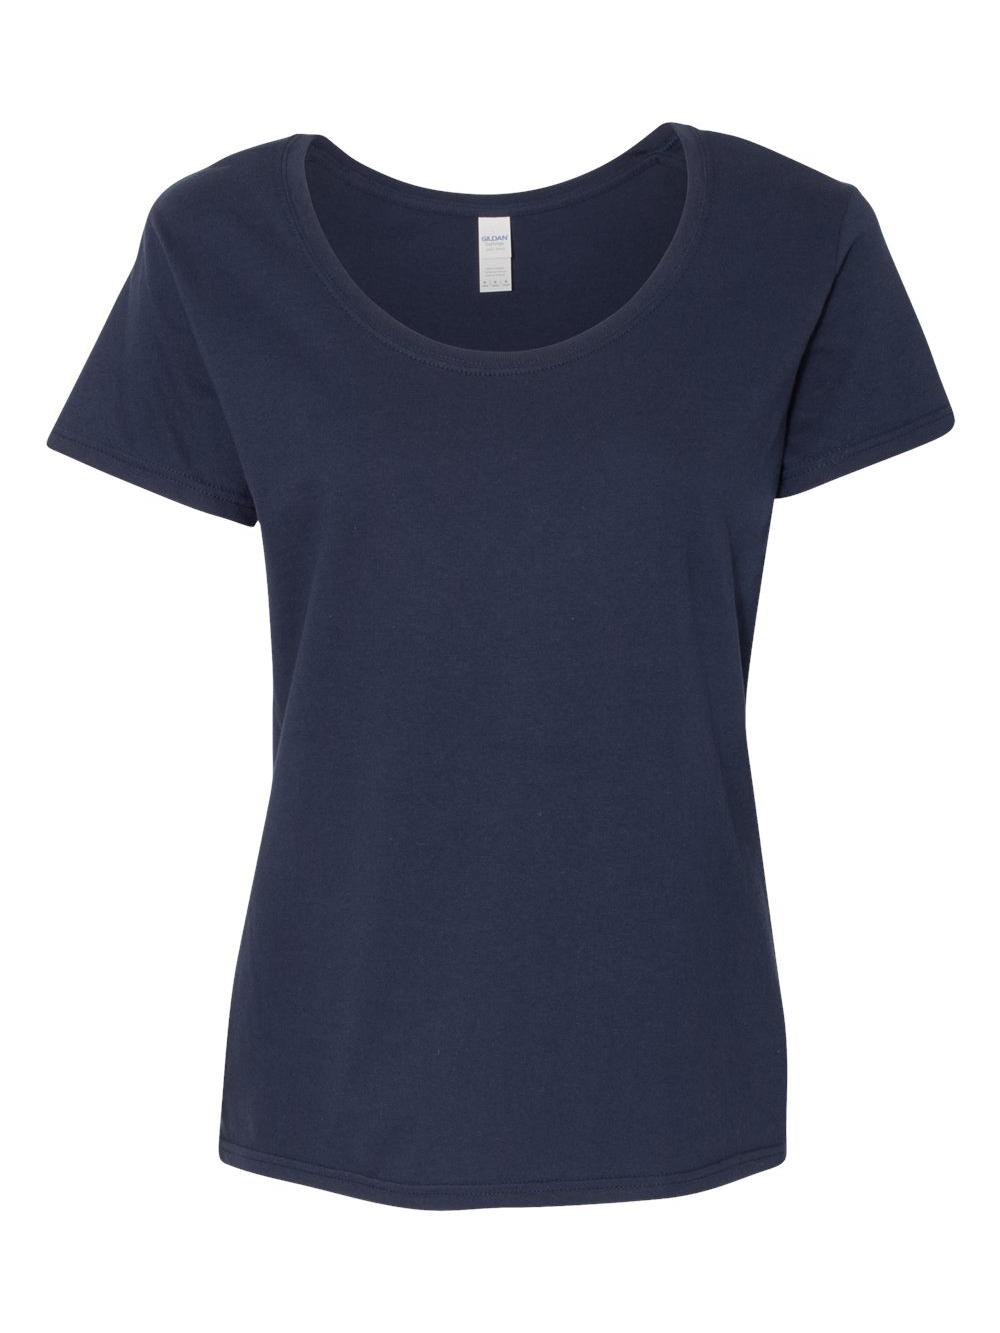 Gildan-Softstyle-Women-039-s-Deep-Scoopneck-T-Shirt-64550L thumbnail 36